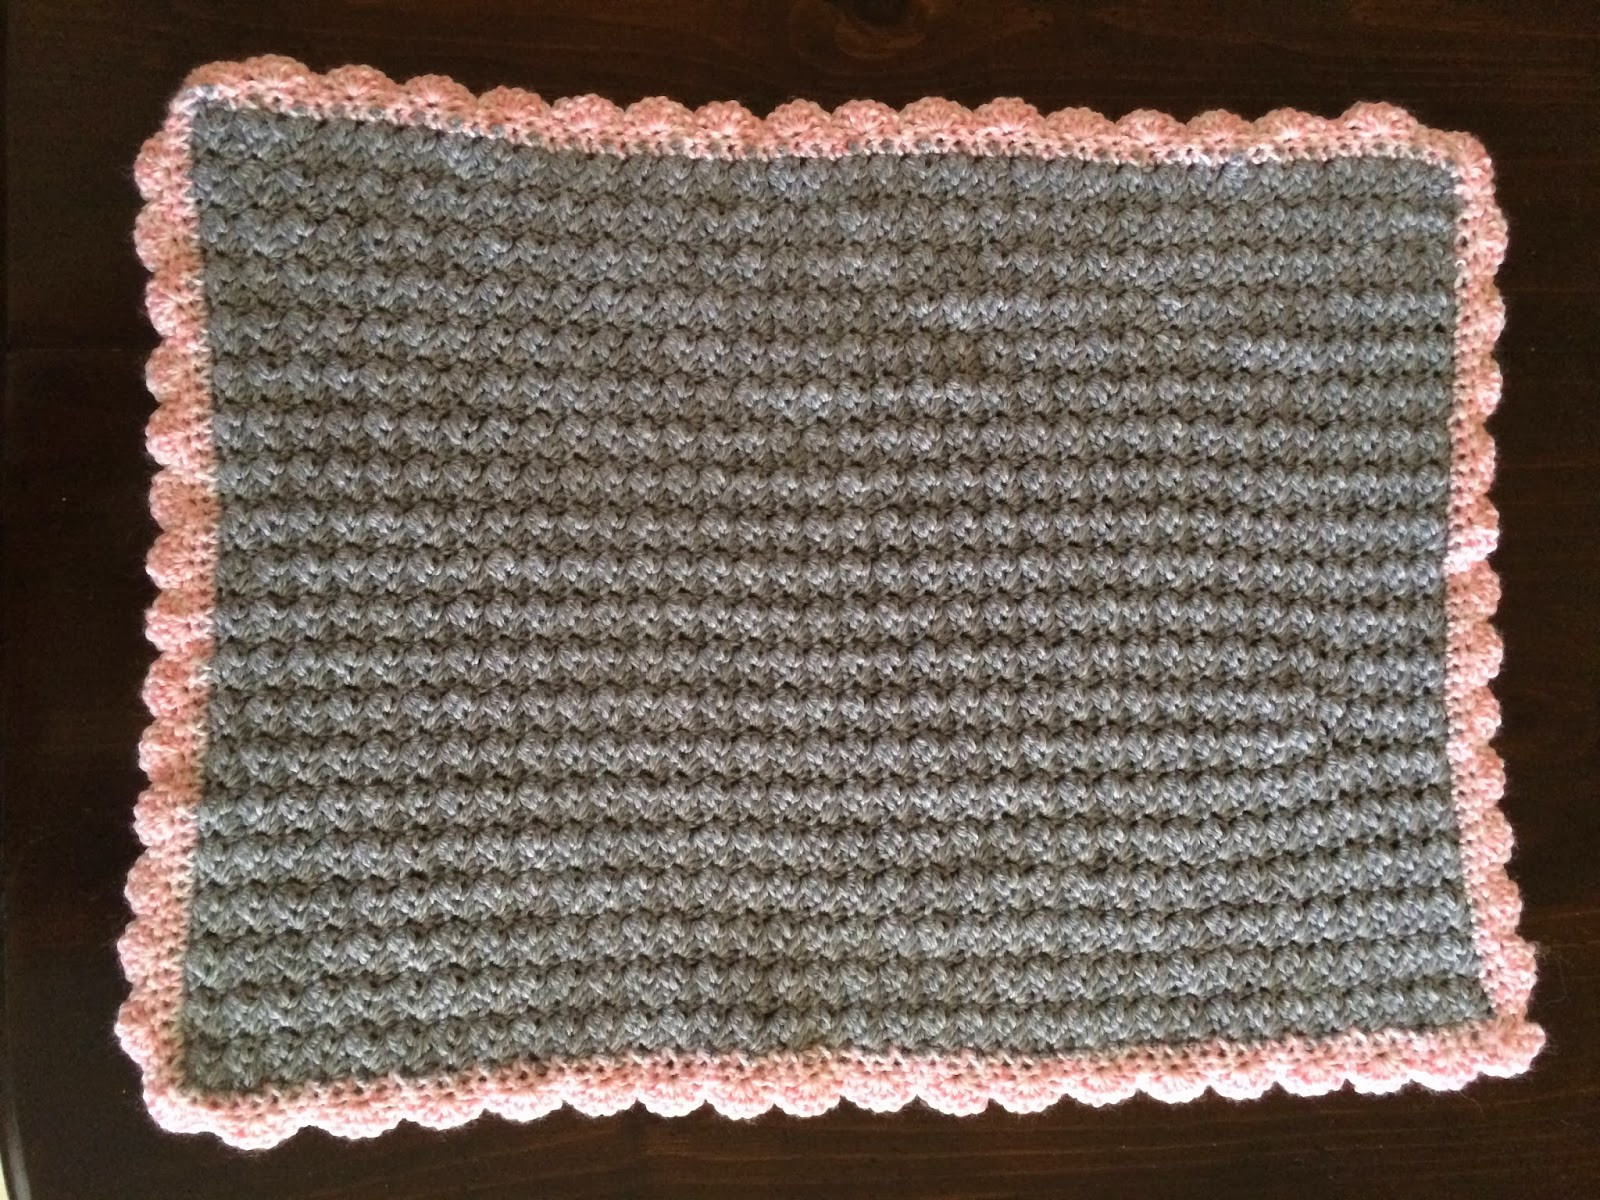 Awesome Crochet Baby Car Seat Blanket In Shell Stitch with Shell Crochet Shell Blanket Of Lovely 40 Pictures Crochet Shell Blanket